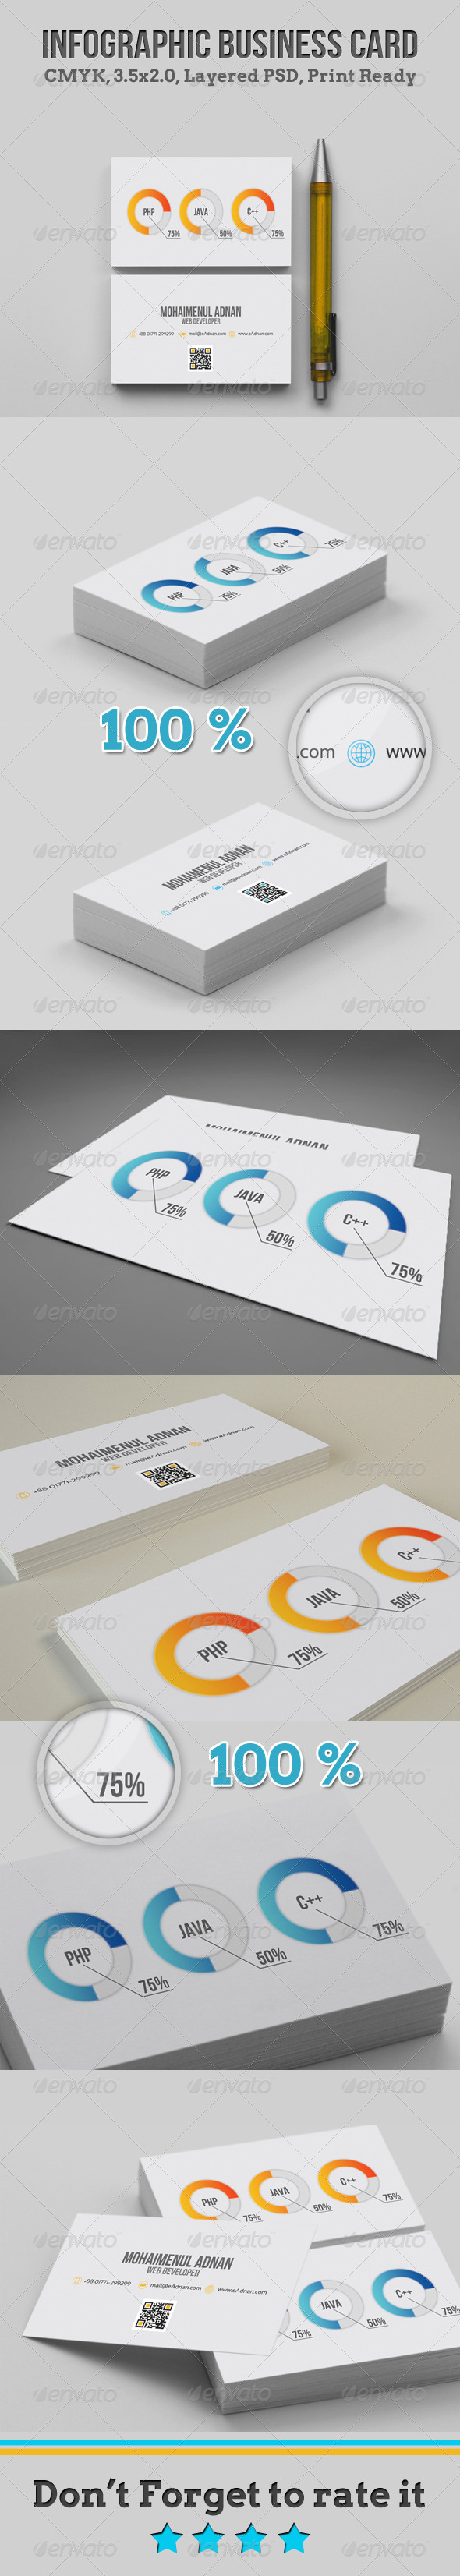 Infographic Business Card - Corporate Business Cards